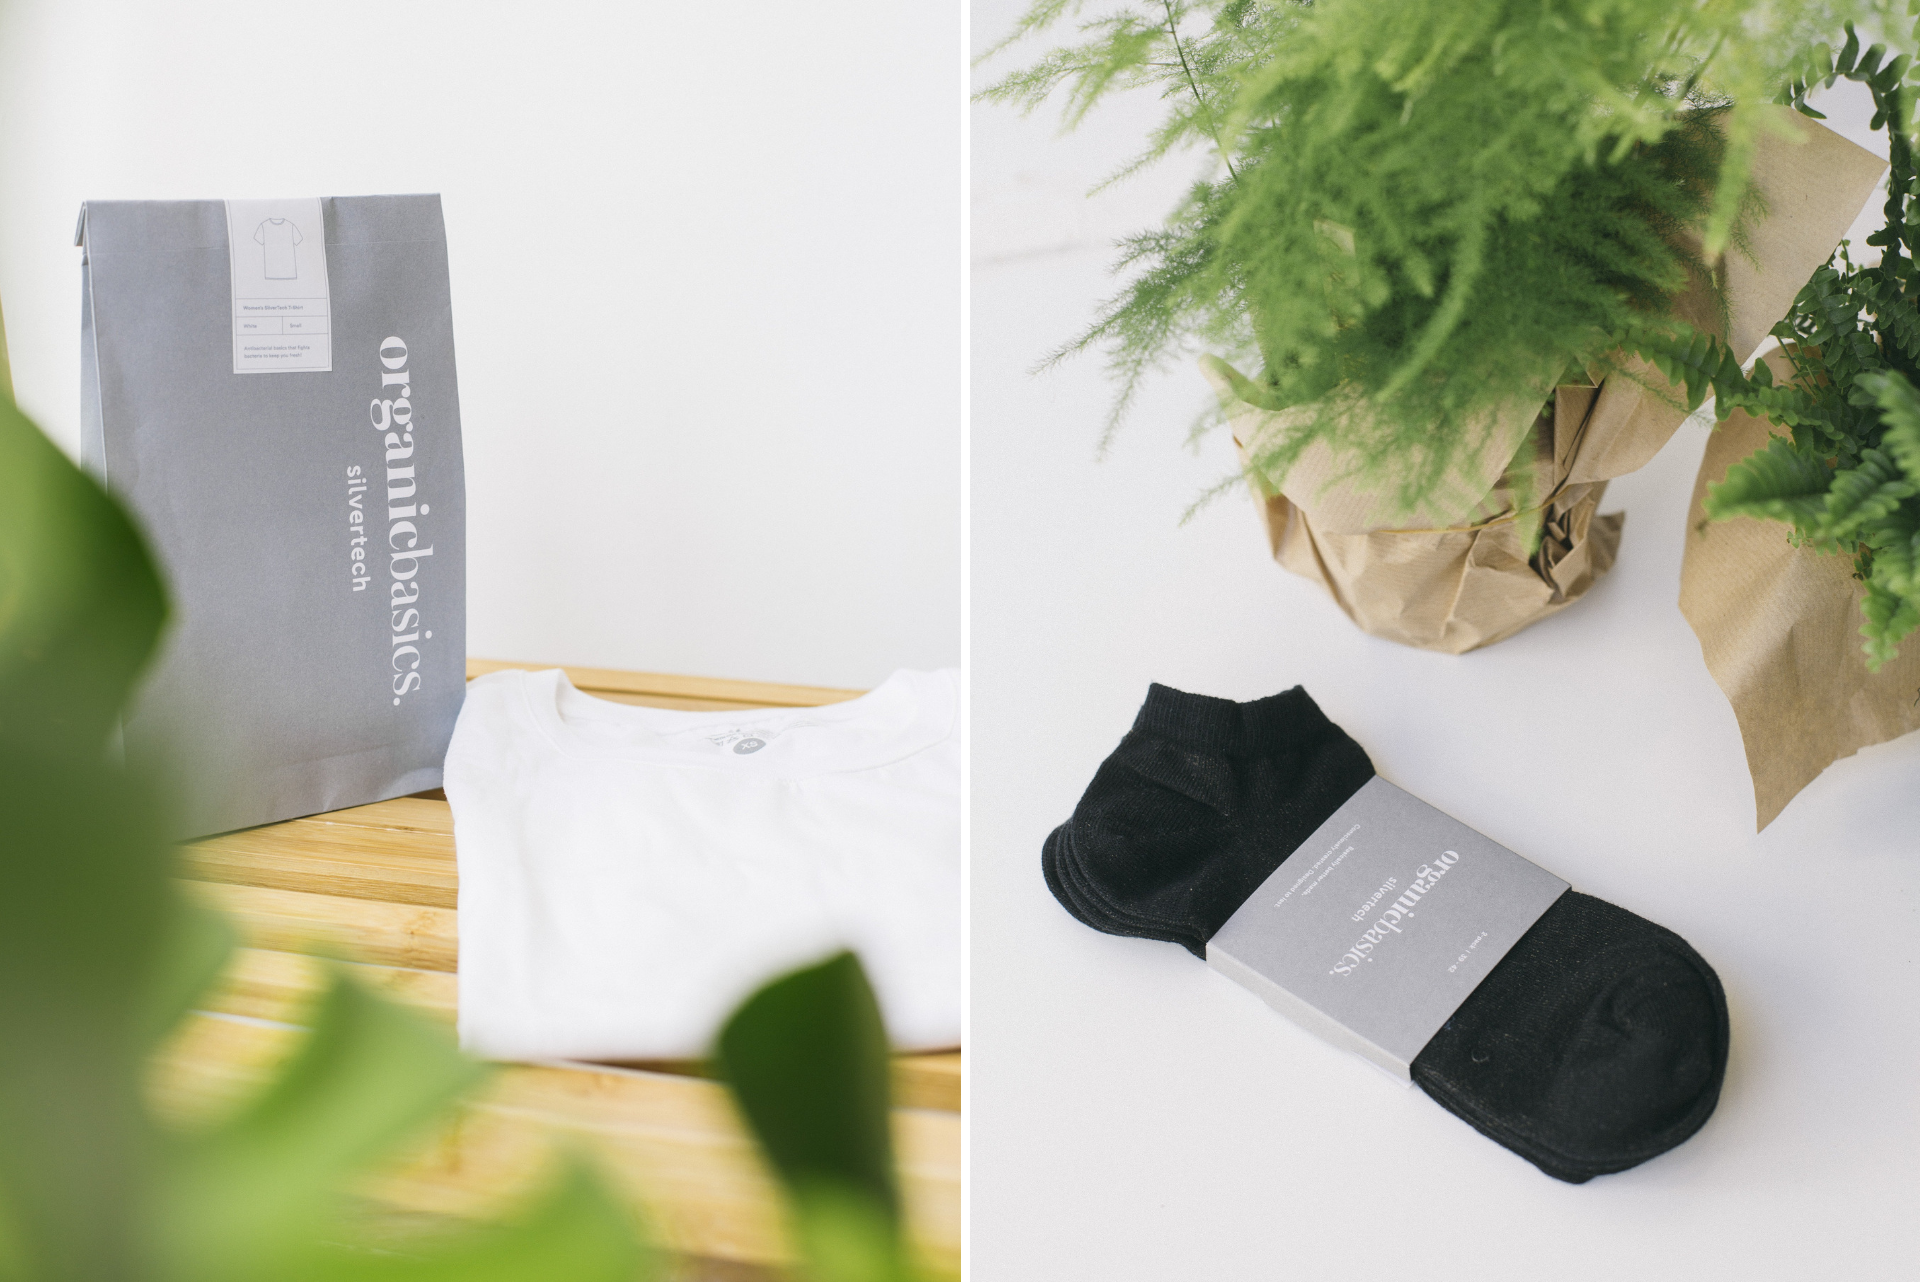 Organic Basics Silvertech clothing. Tee shirt and pair of socks. Plants on white background. 27 Best Eco-Friendly Travel Products That Will Change Your Life. Eco friendly products for sustainable travel. Eco-friendly products. Earth friendly products. Travel accessories. Eco friendly bags. Eco friendly travel bags. Eco friendly gifts. Eco friendly clothing. Eco friendly water bottles. Ethical travel. Responsible travel. Eco friendly holidays. Eco friendly tourism. Eco friendly hotels. Eco friendly vacations. Sustainable tourism. Ecotourism. Sustainable holidays. Eco travel. Click through to read more...